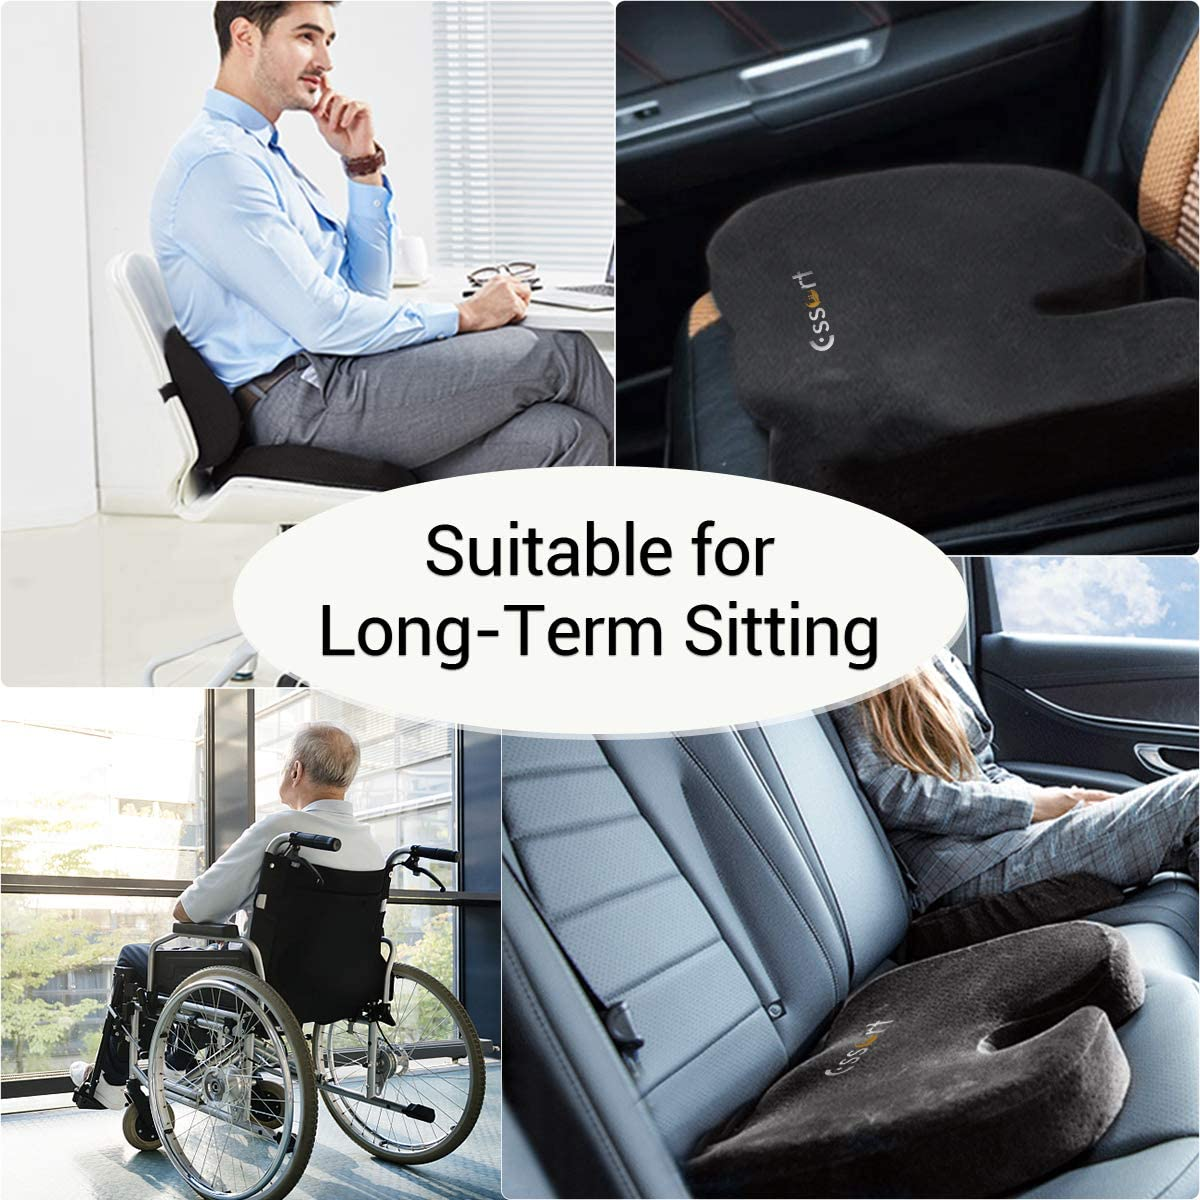 Essort Seat Cushion Back Seat Cushion Lumbar Support Pillow Memory Foam Washable Cover Comfort Seat Cushion Pad for Office Computer Chair Car Wheelchair